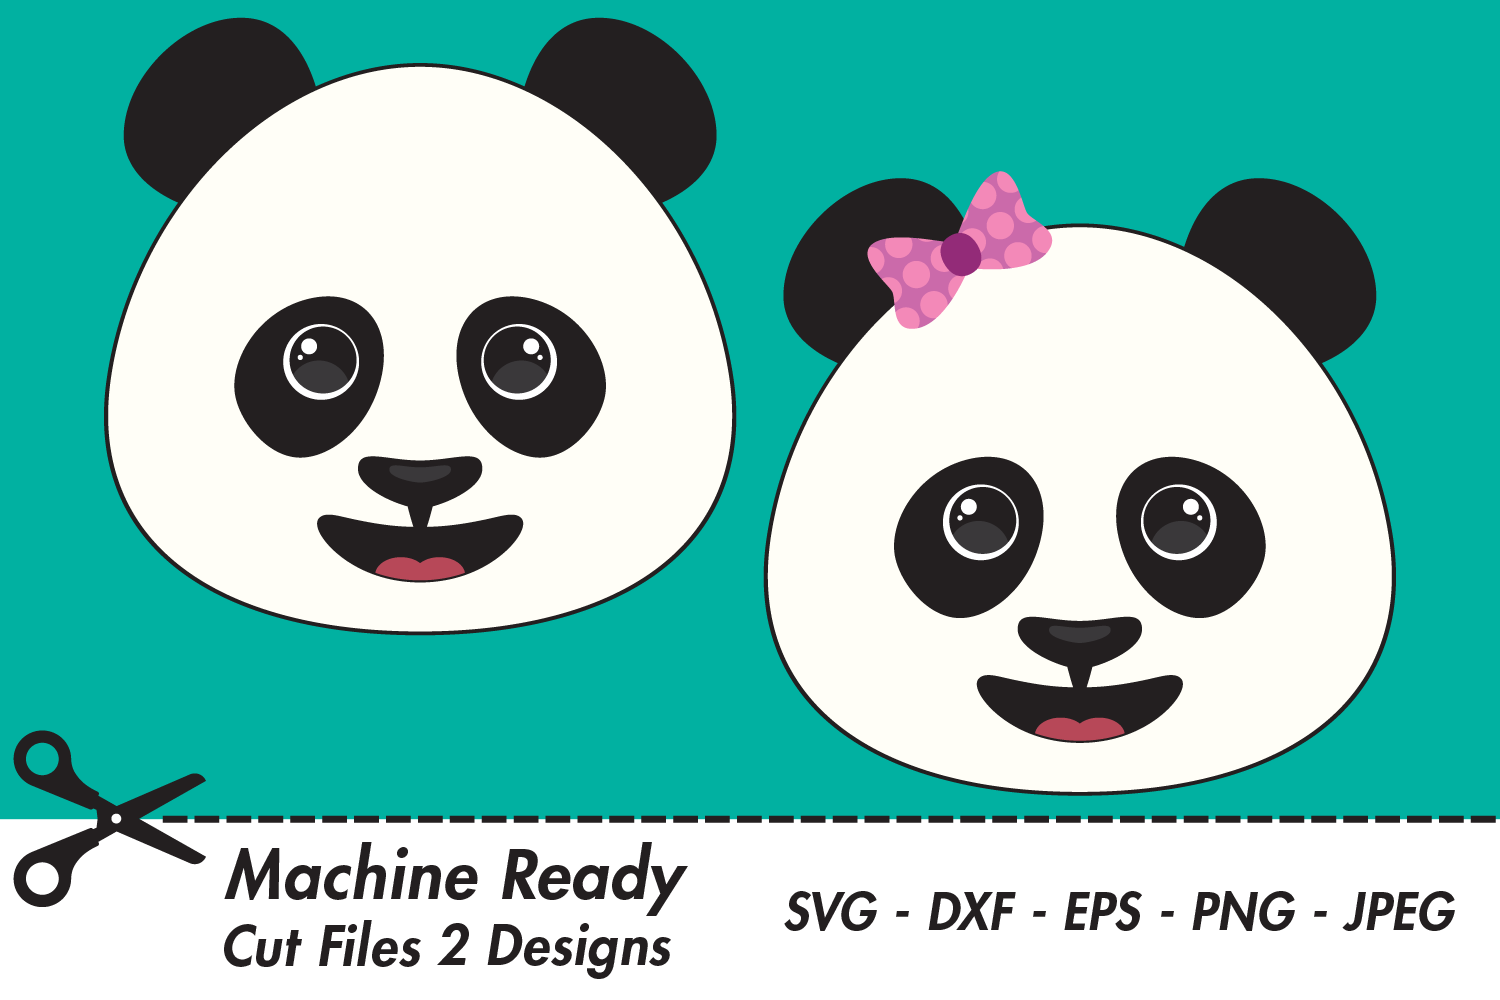 Download Free Cute Panda Bear Faces Graphic By Captaincreative Creative Fabrica for Cricut Explore, Silhouette and other cutting machines.